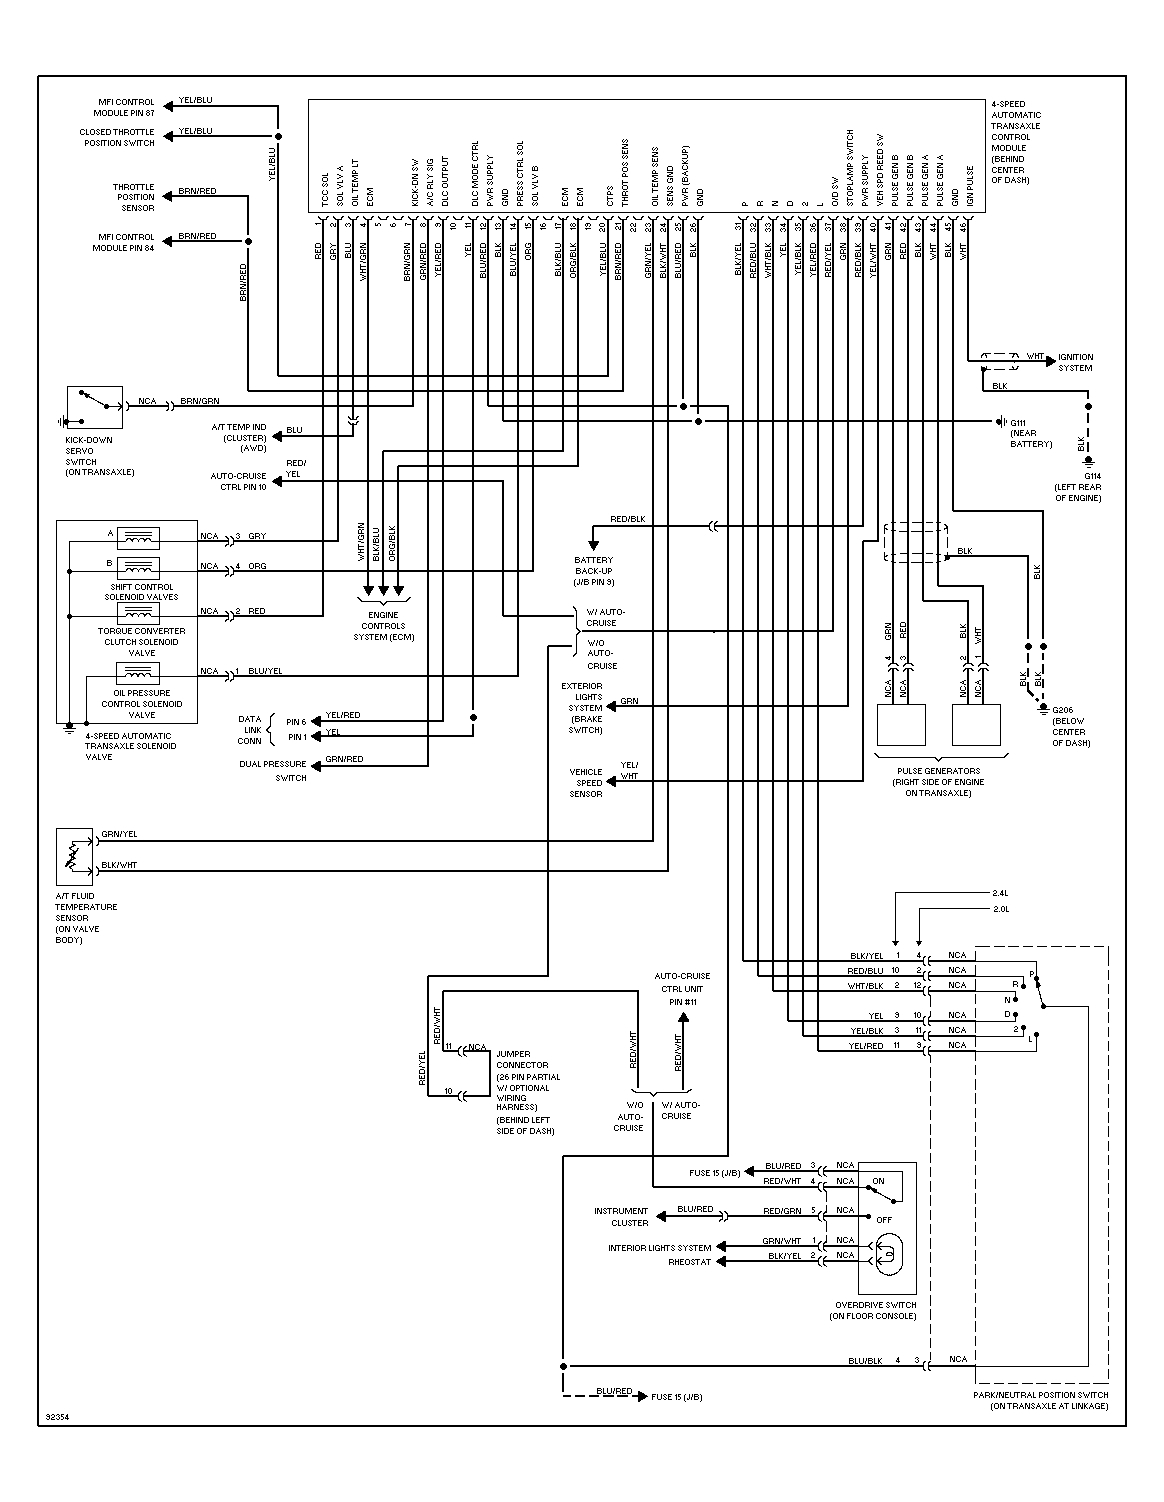 2001 mitsubishi eclipse wiring diagram | free wiring diagram wiring diagram 2001 polaris 250 #11